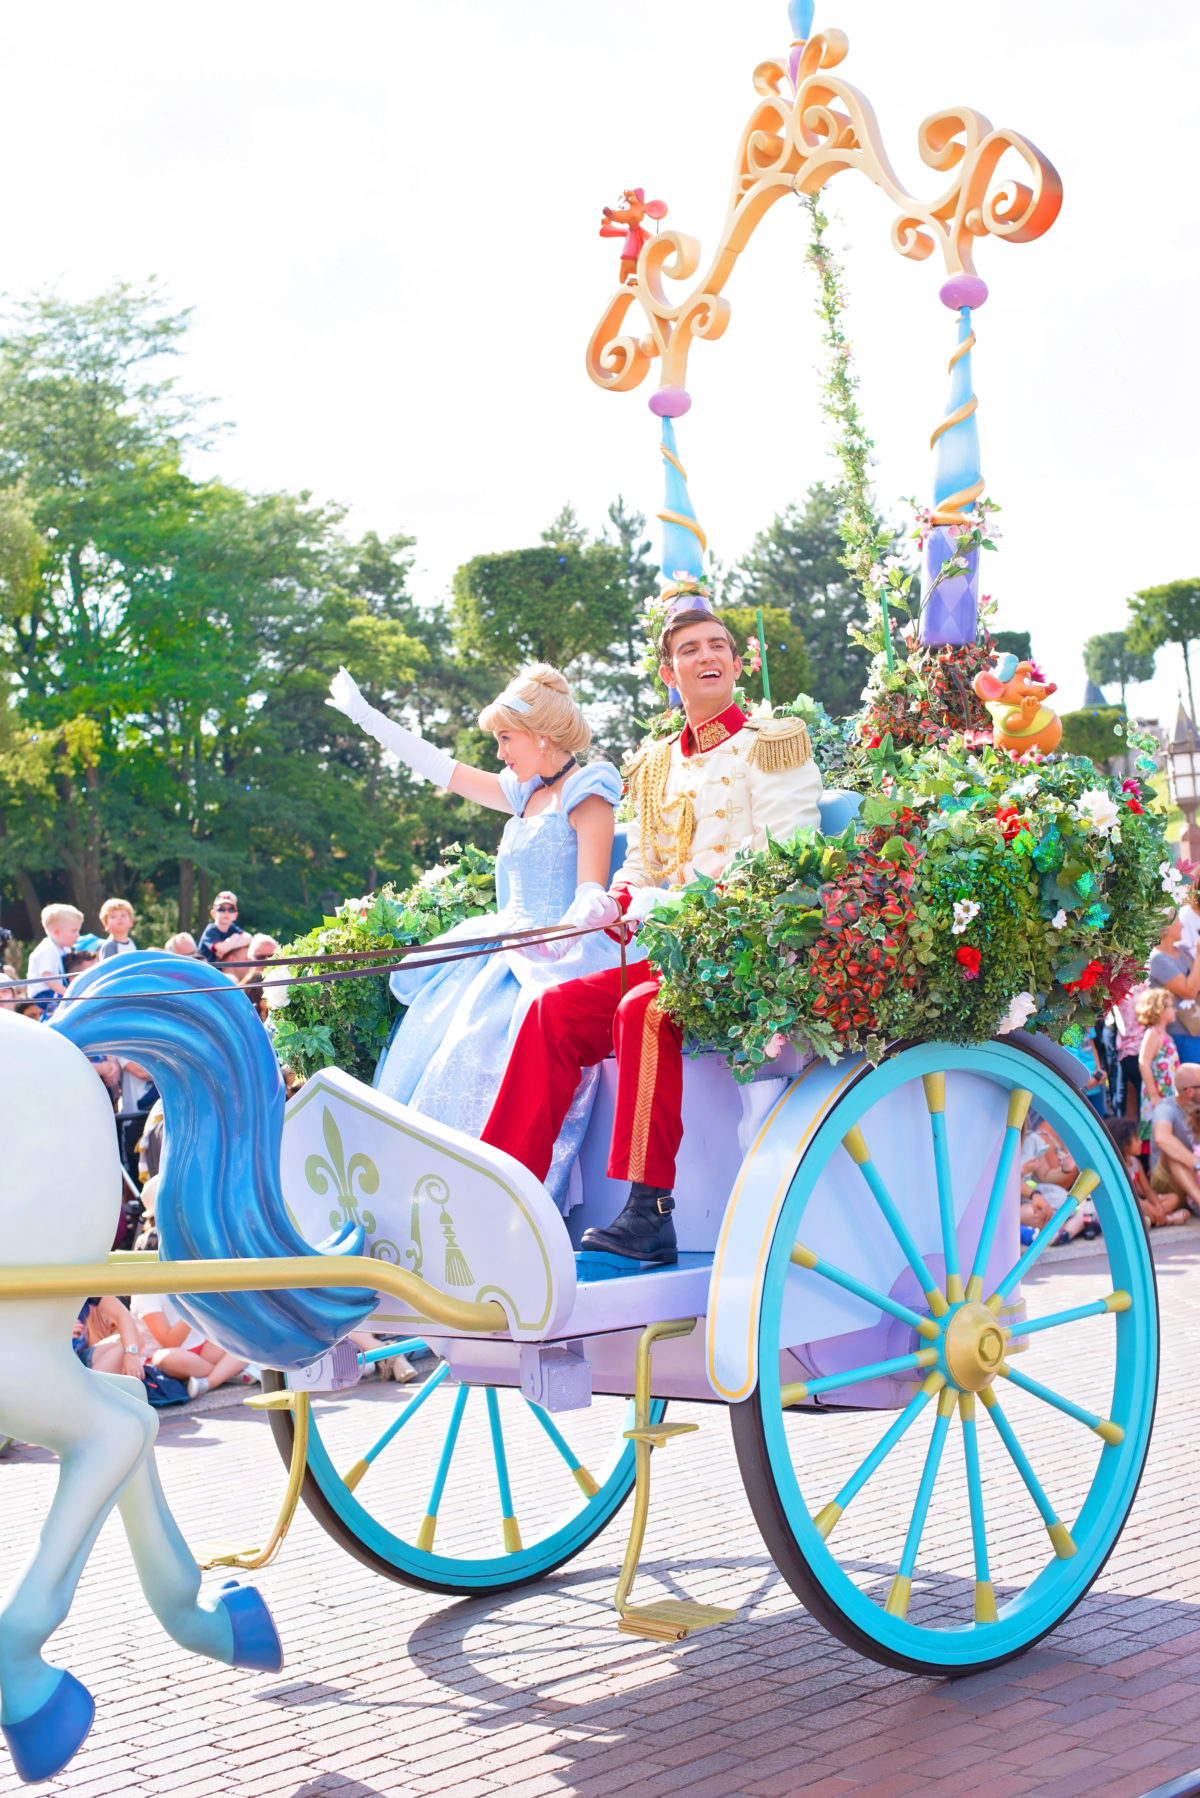 cinderella carriage disneyland paris happy prince charming